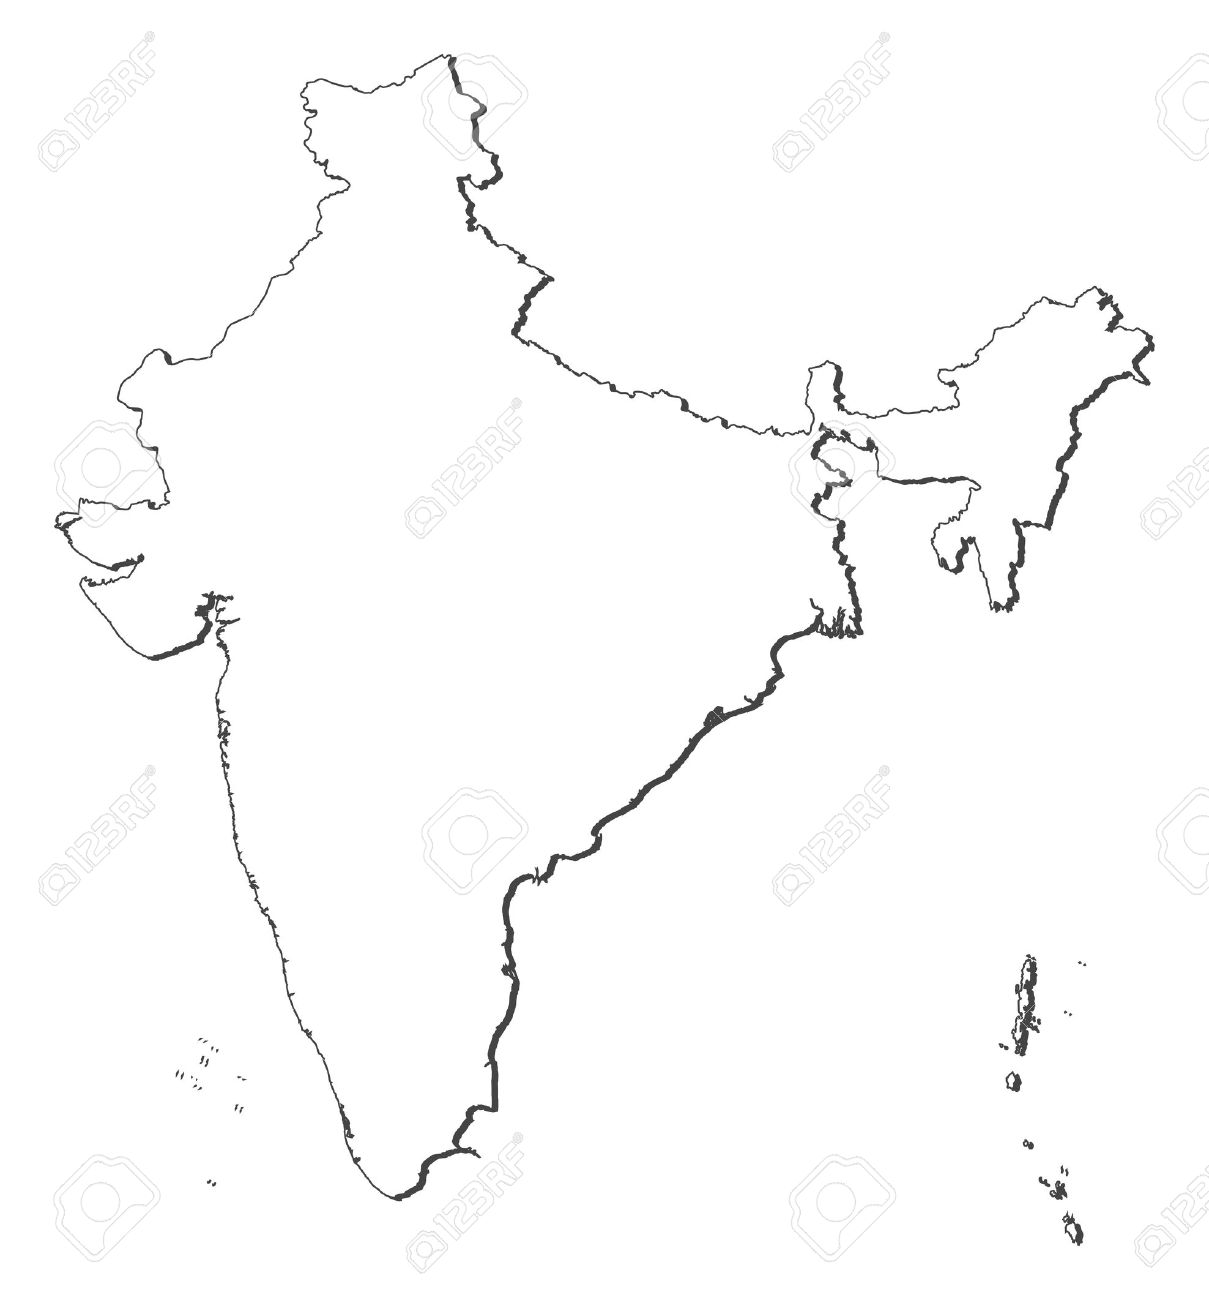 Political map of india with the several states royalty free political map of india with the several states stock vector 11451575 thecheapjerseys Images